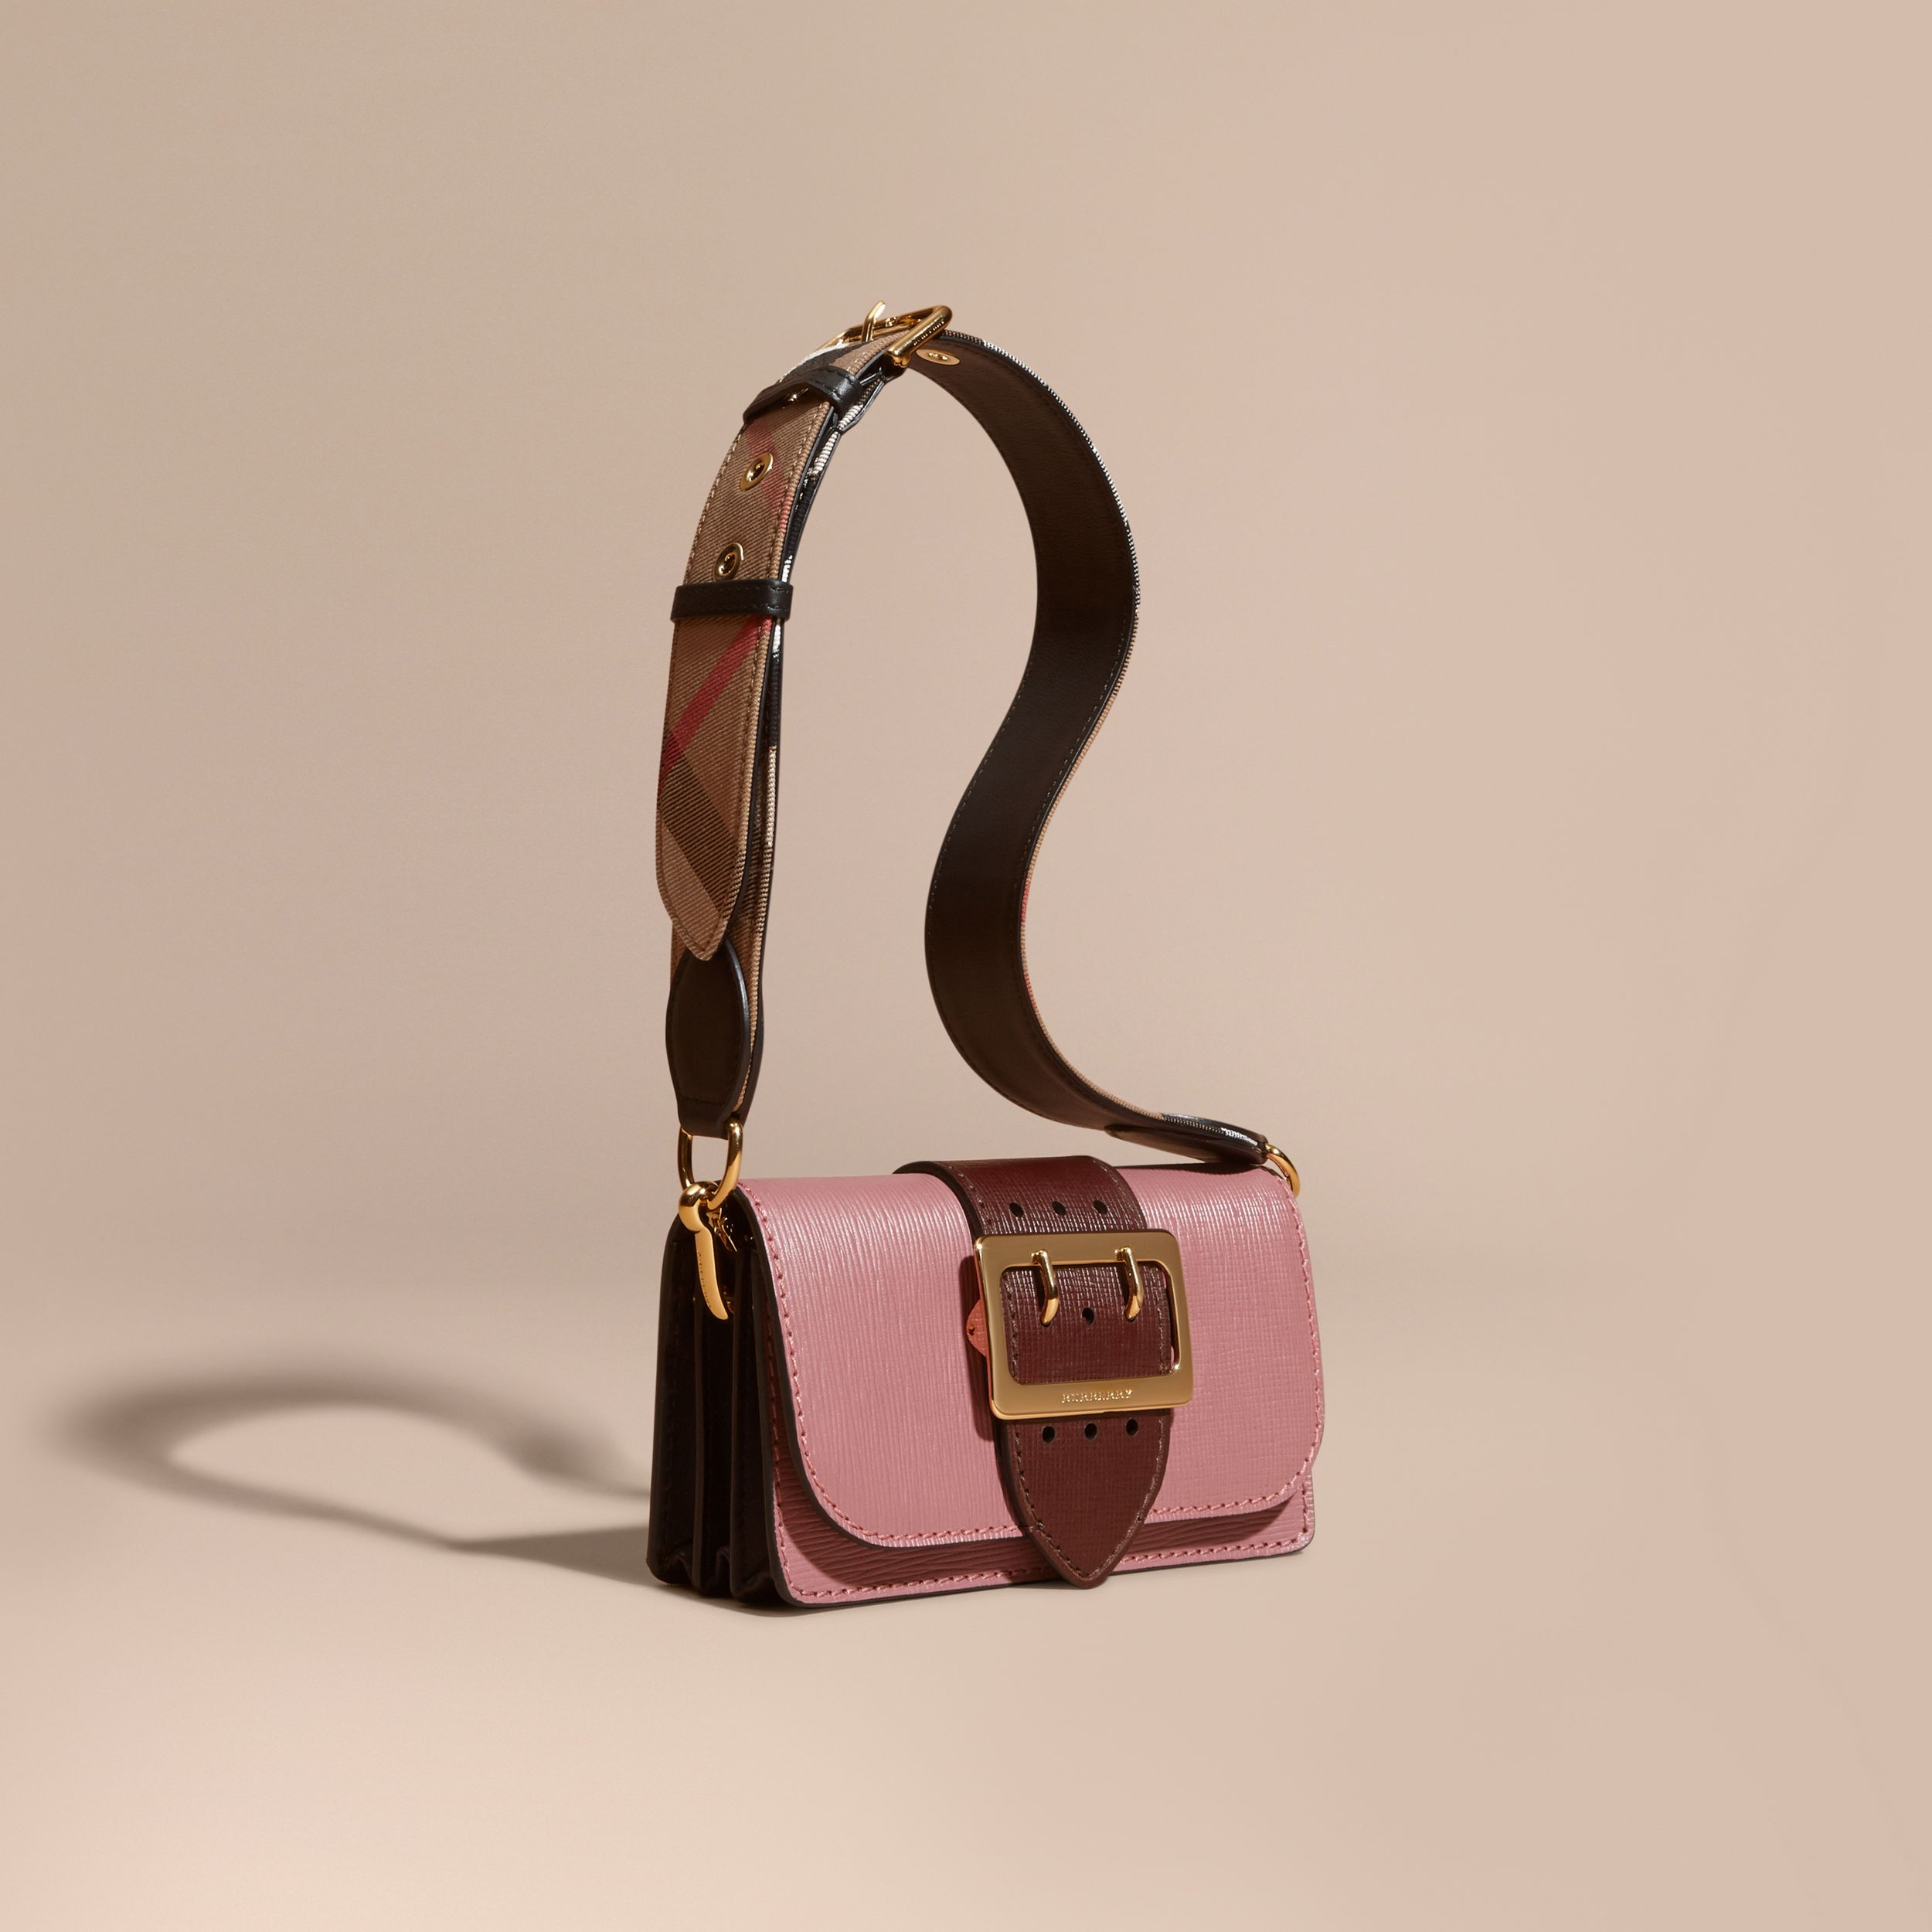 The Small Buckle Bag in Textured Leather in Dusky Pink/ Burgundy | Burberry United States - 1